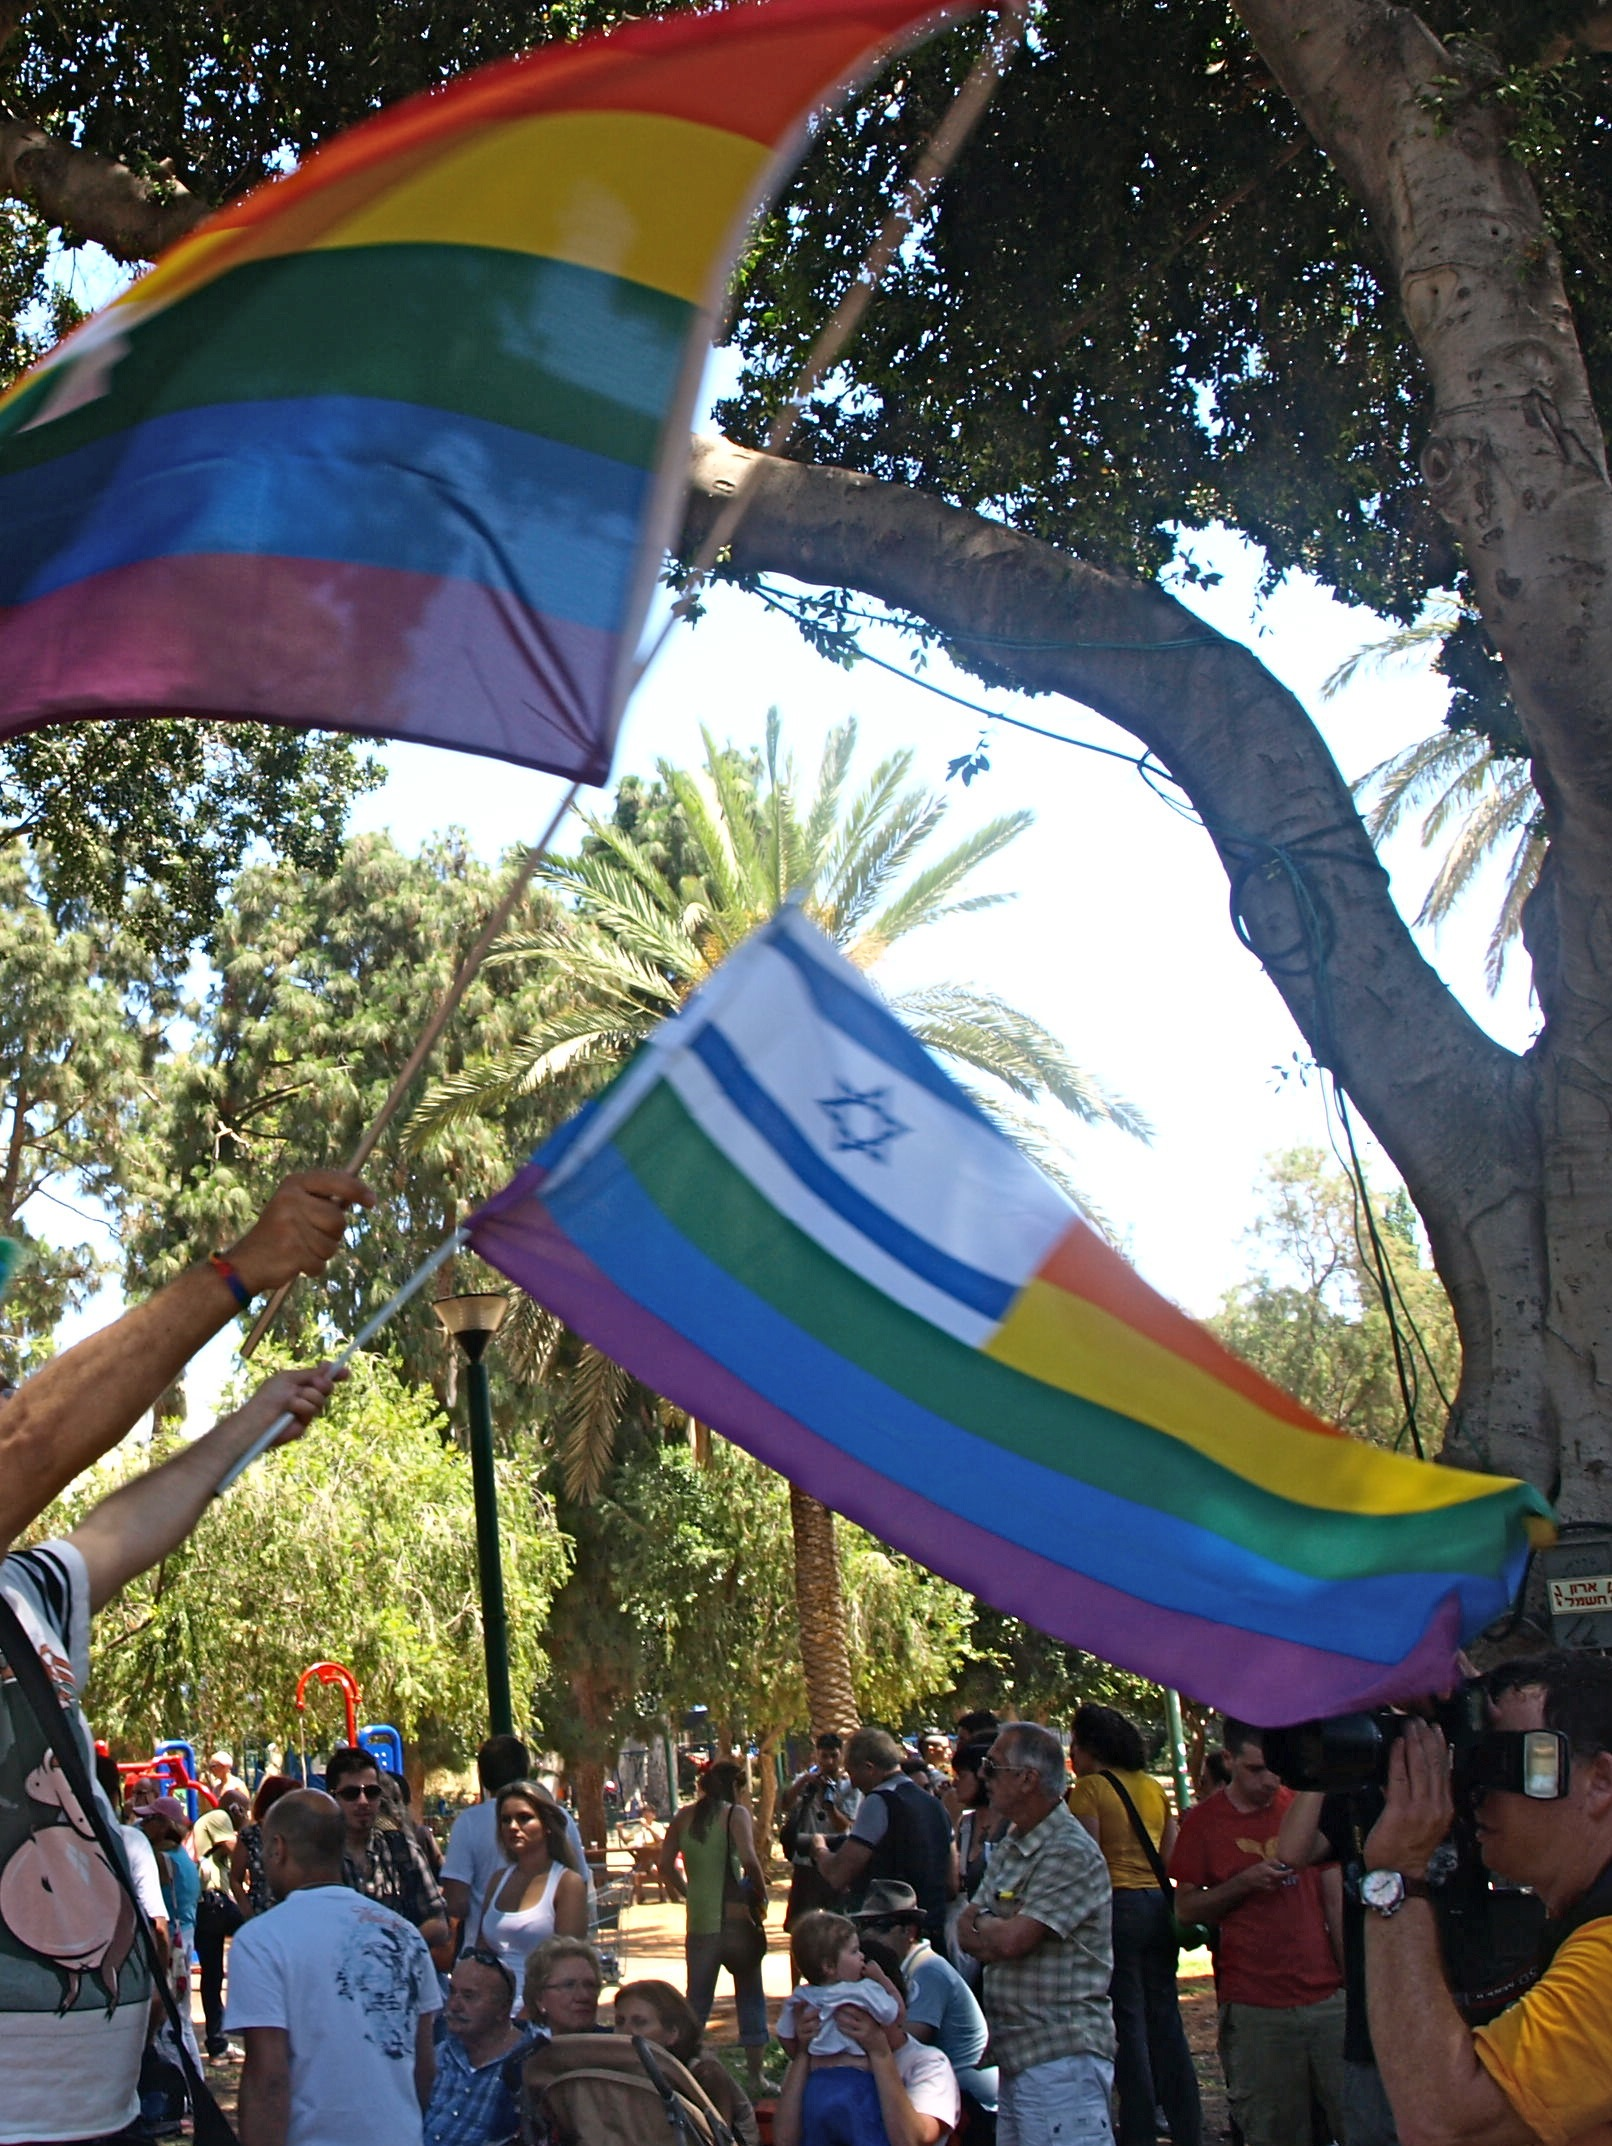 Rainbow flags in Tel Aviv - Wikimedia Commons